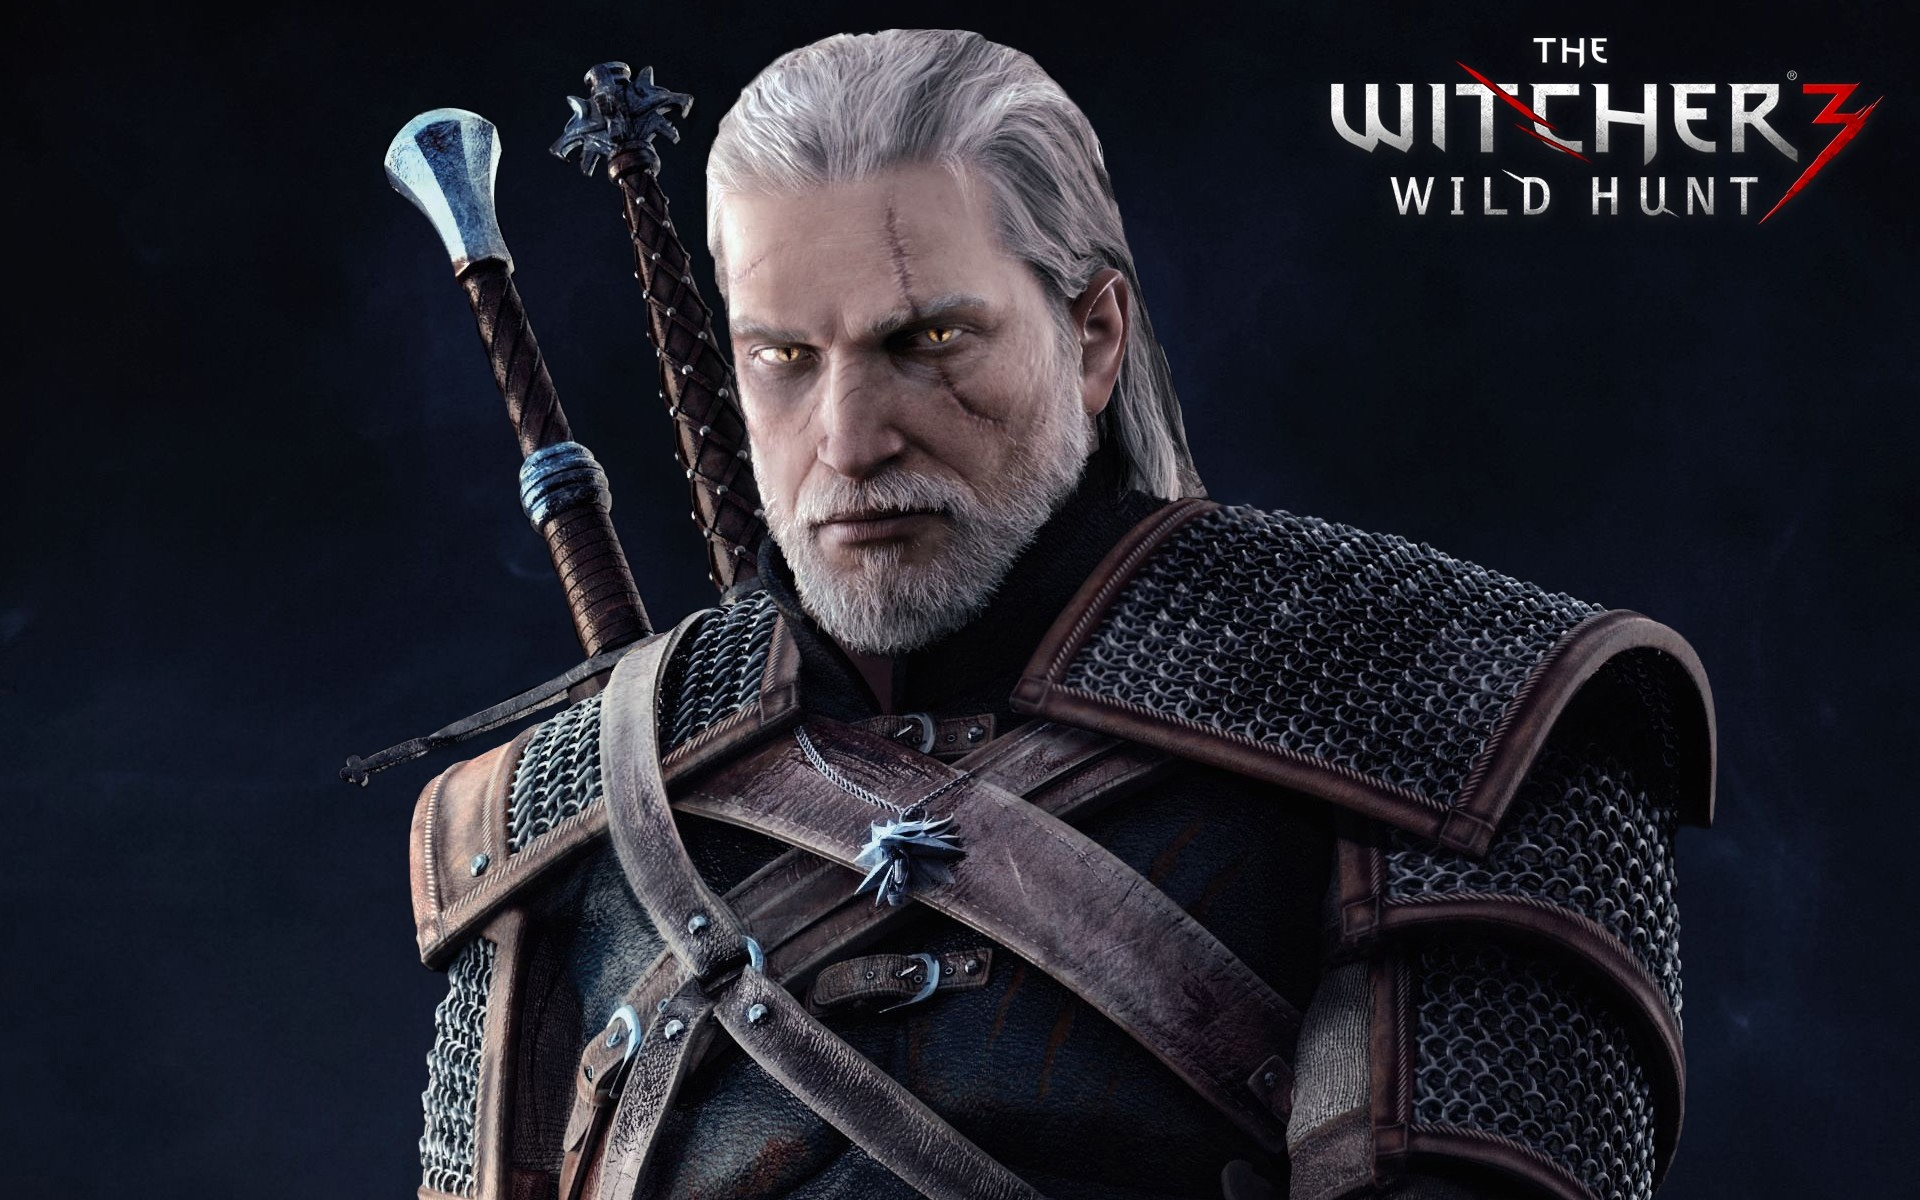 Wallpaper Hd The Witcher 3 Wild Hunt Game